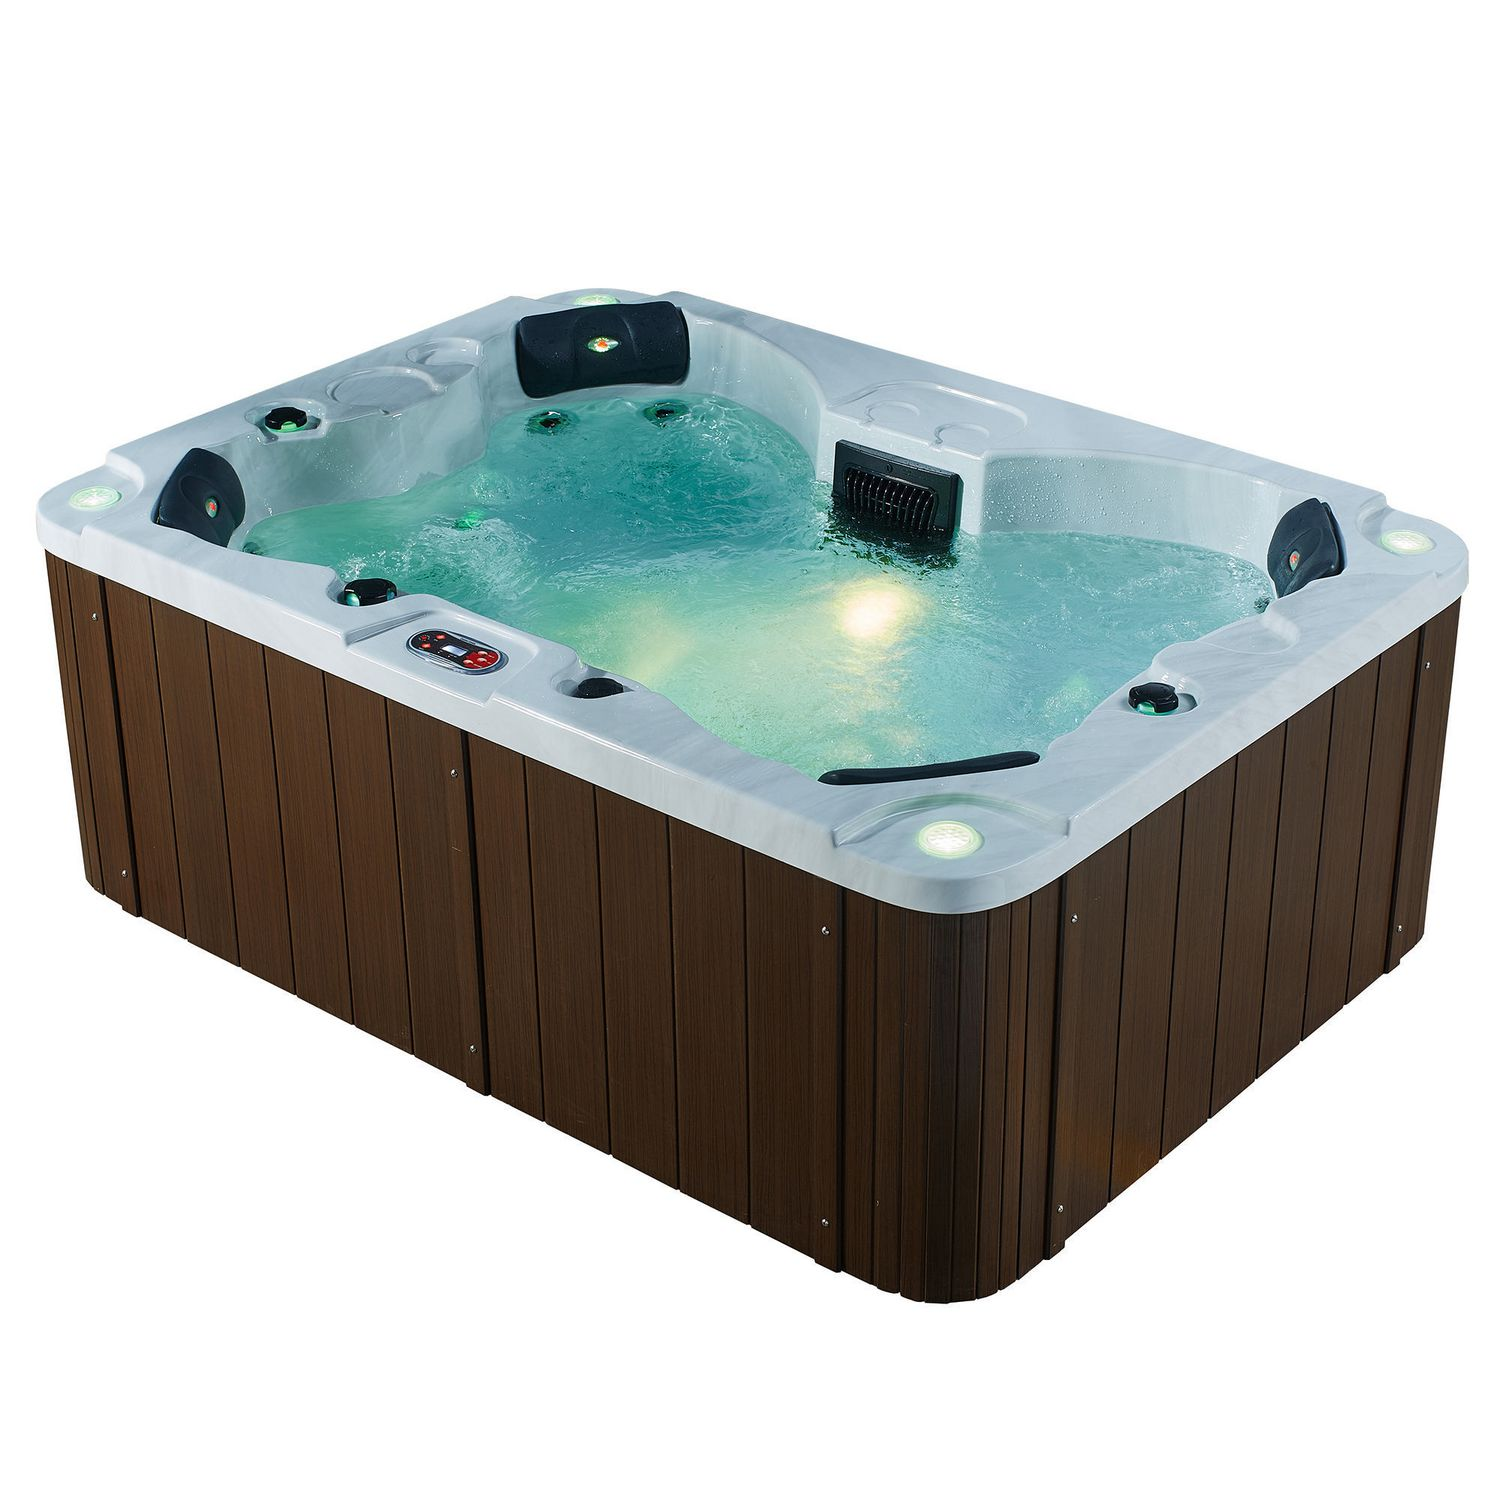 prix jacuzzi 4 places spa jacuzzi gonflable 6 places puis boutique a bathroom to remember. Black Bedroom Furniture Sets. Home Design Ideas